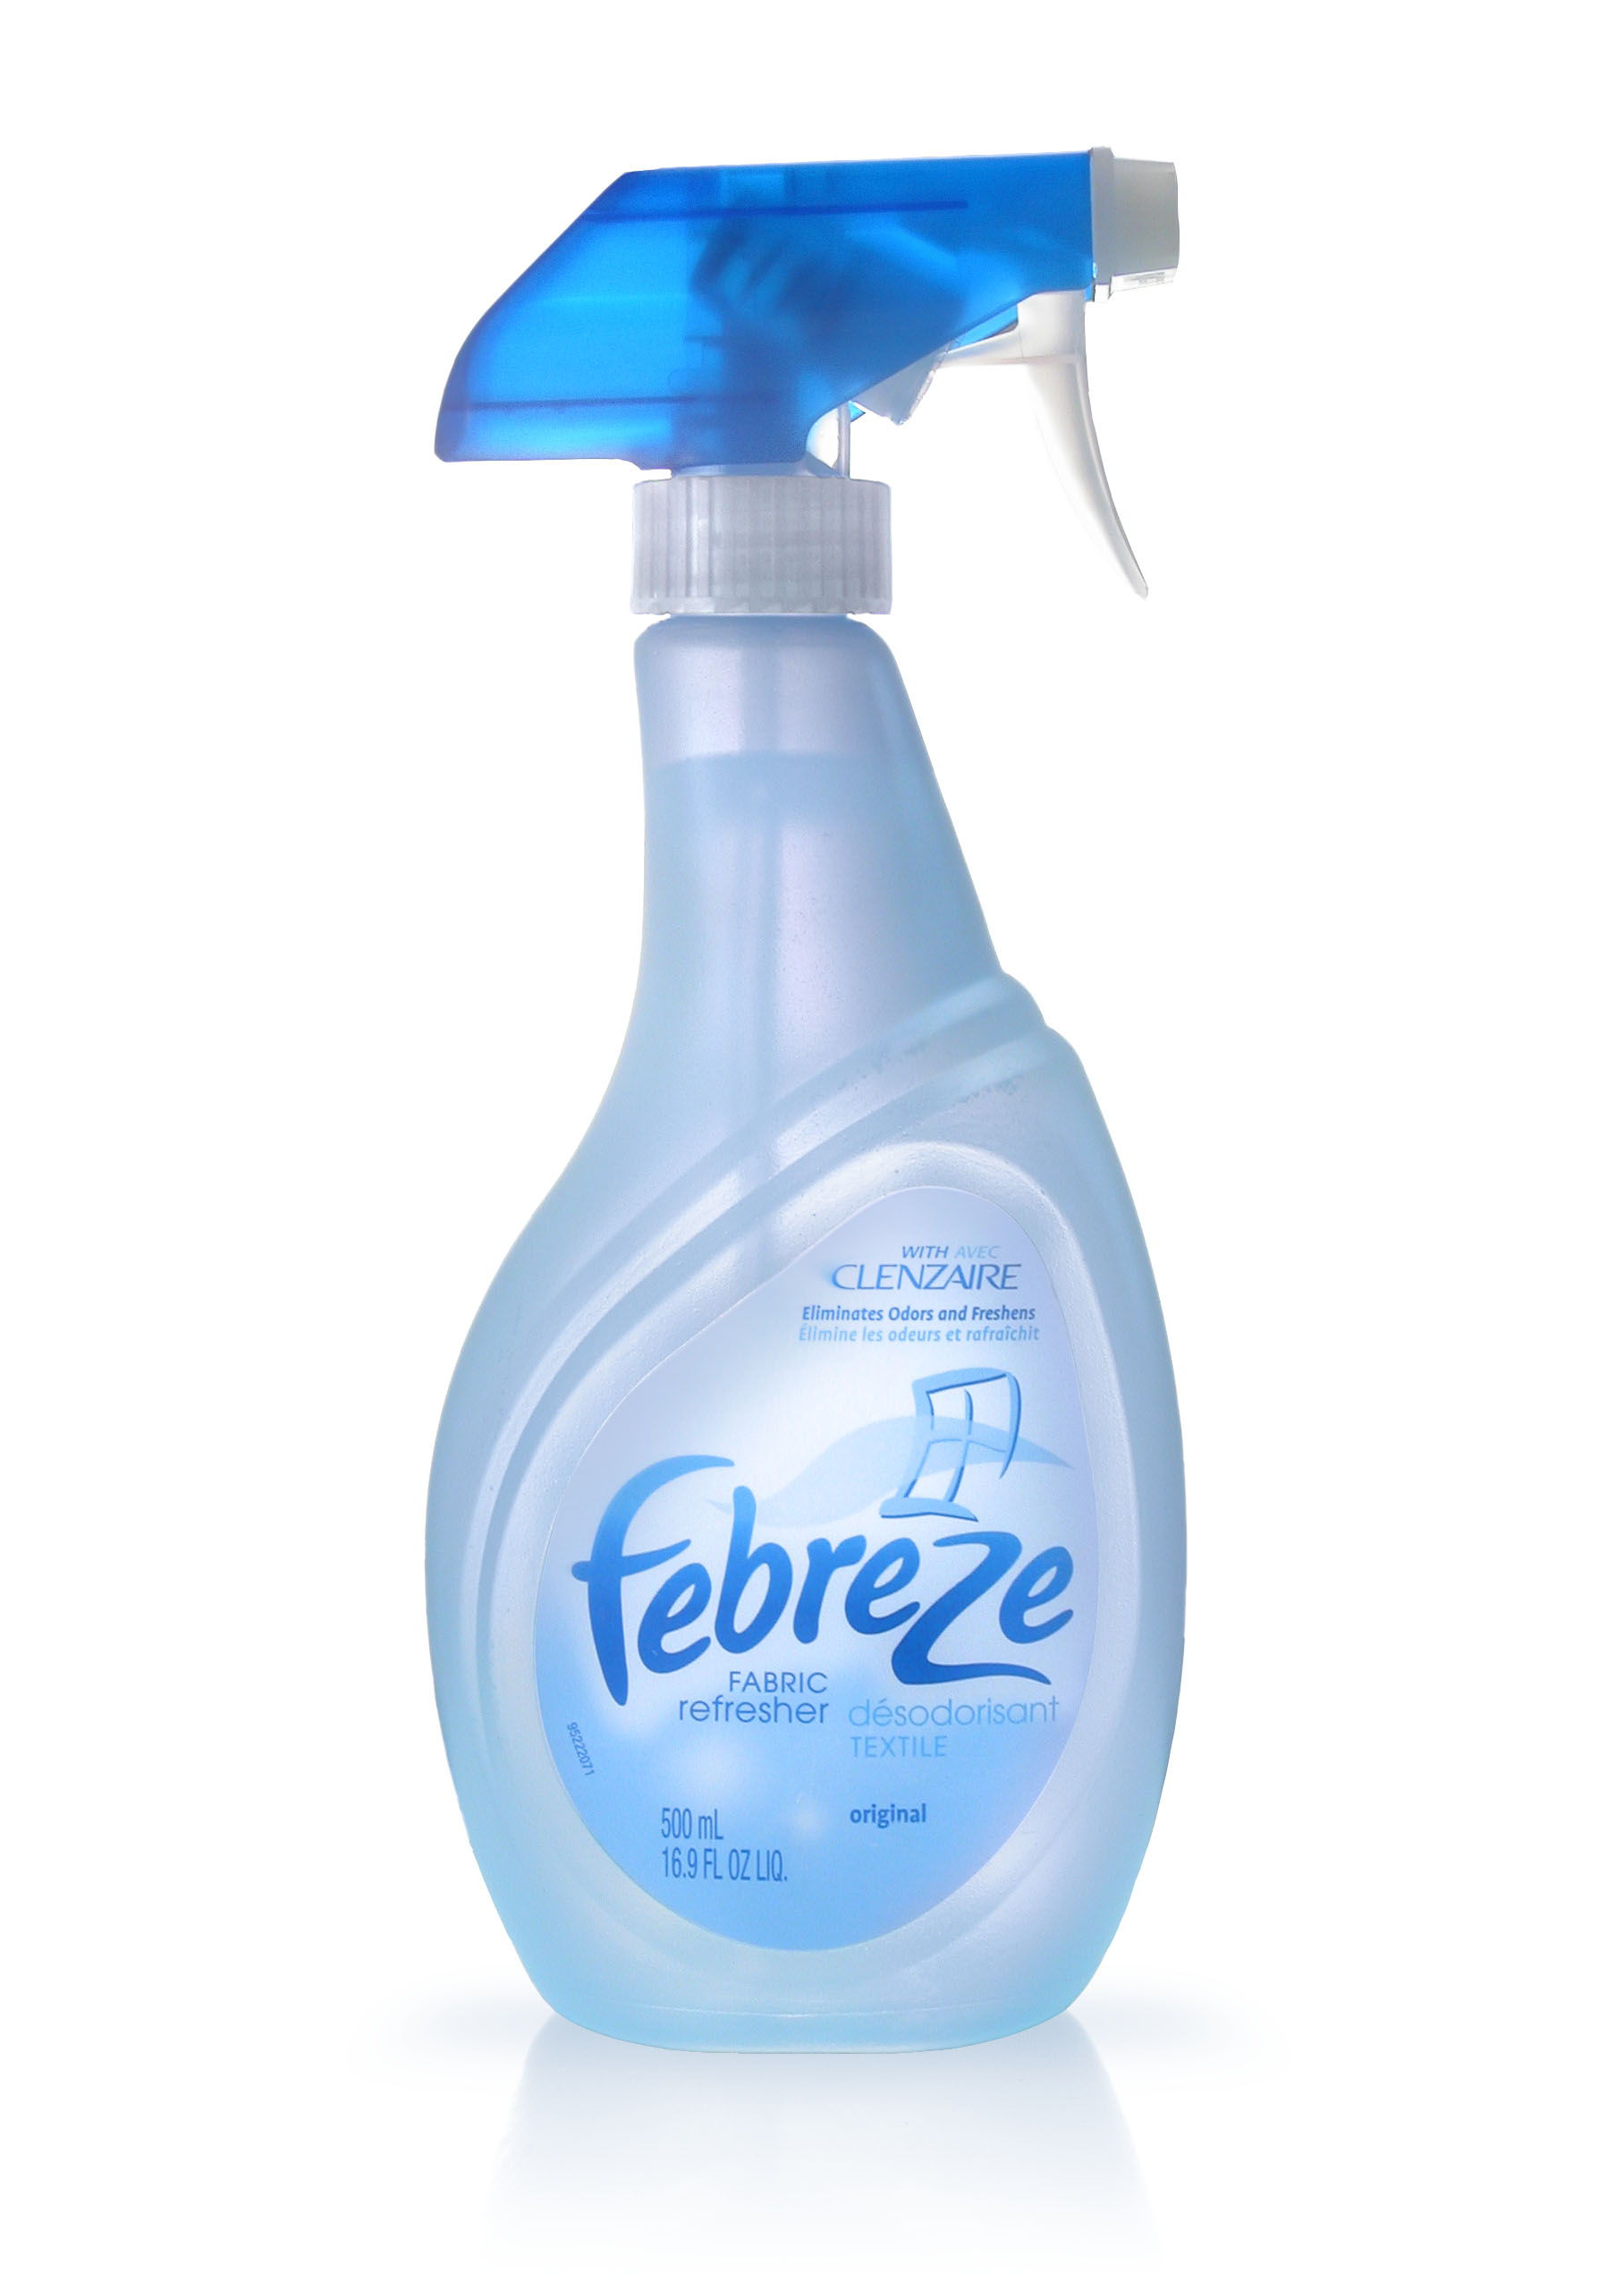 Product Ventures Designs New Febreze Bottle